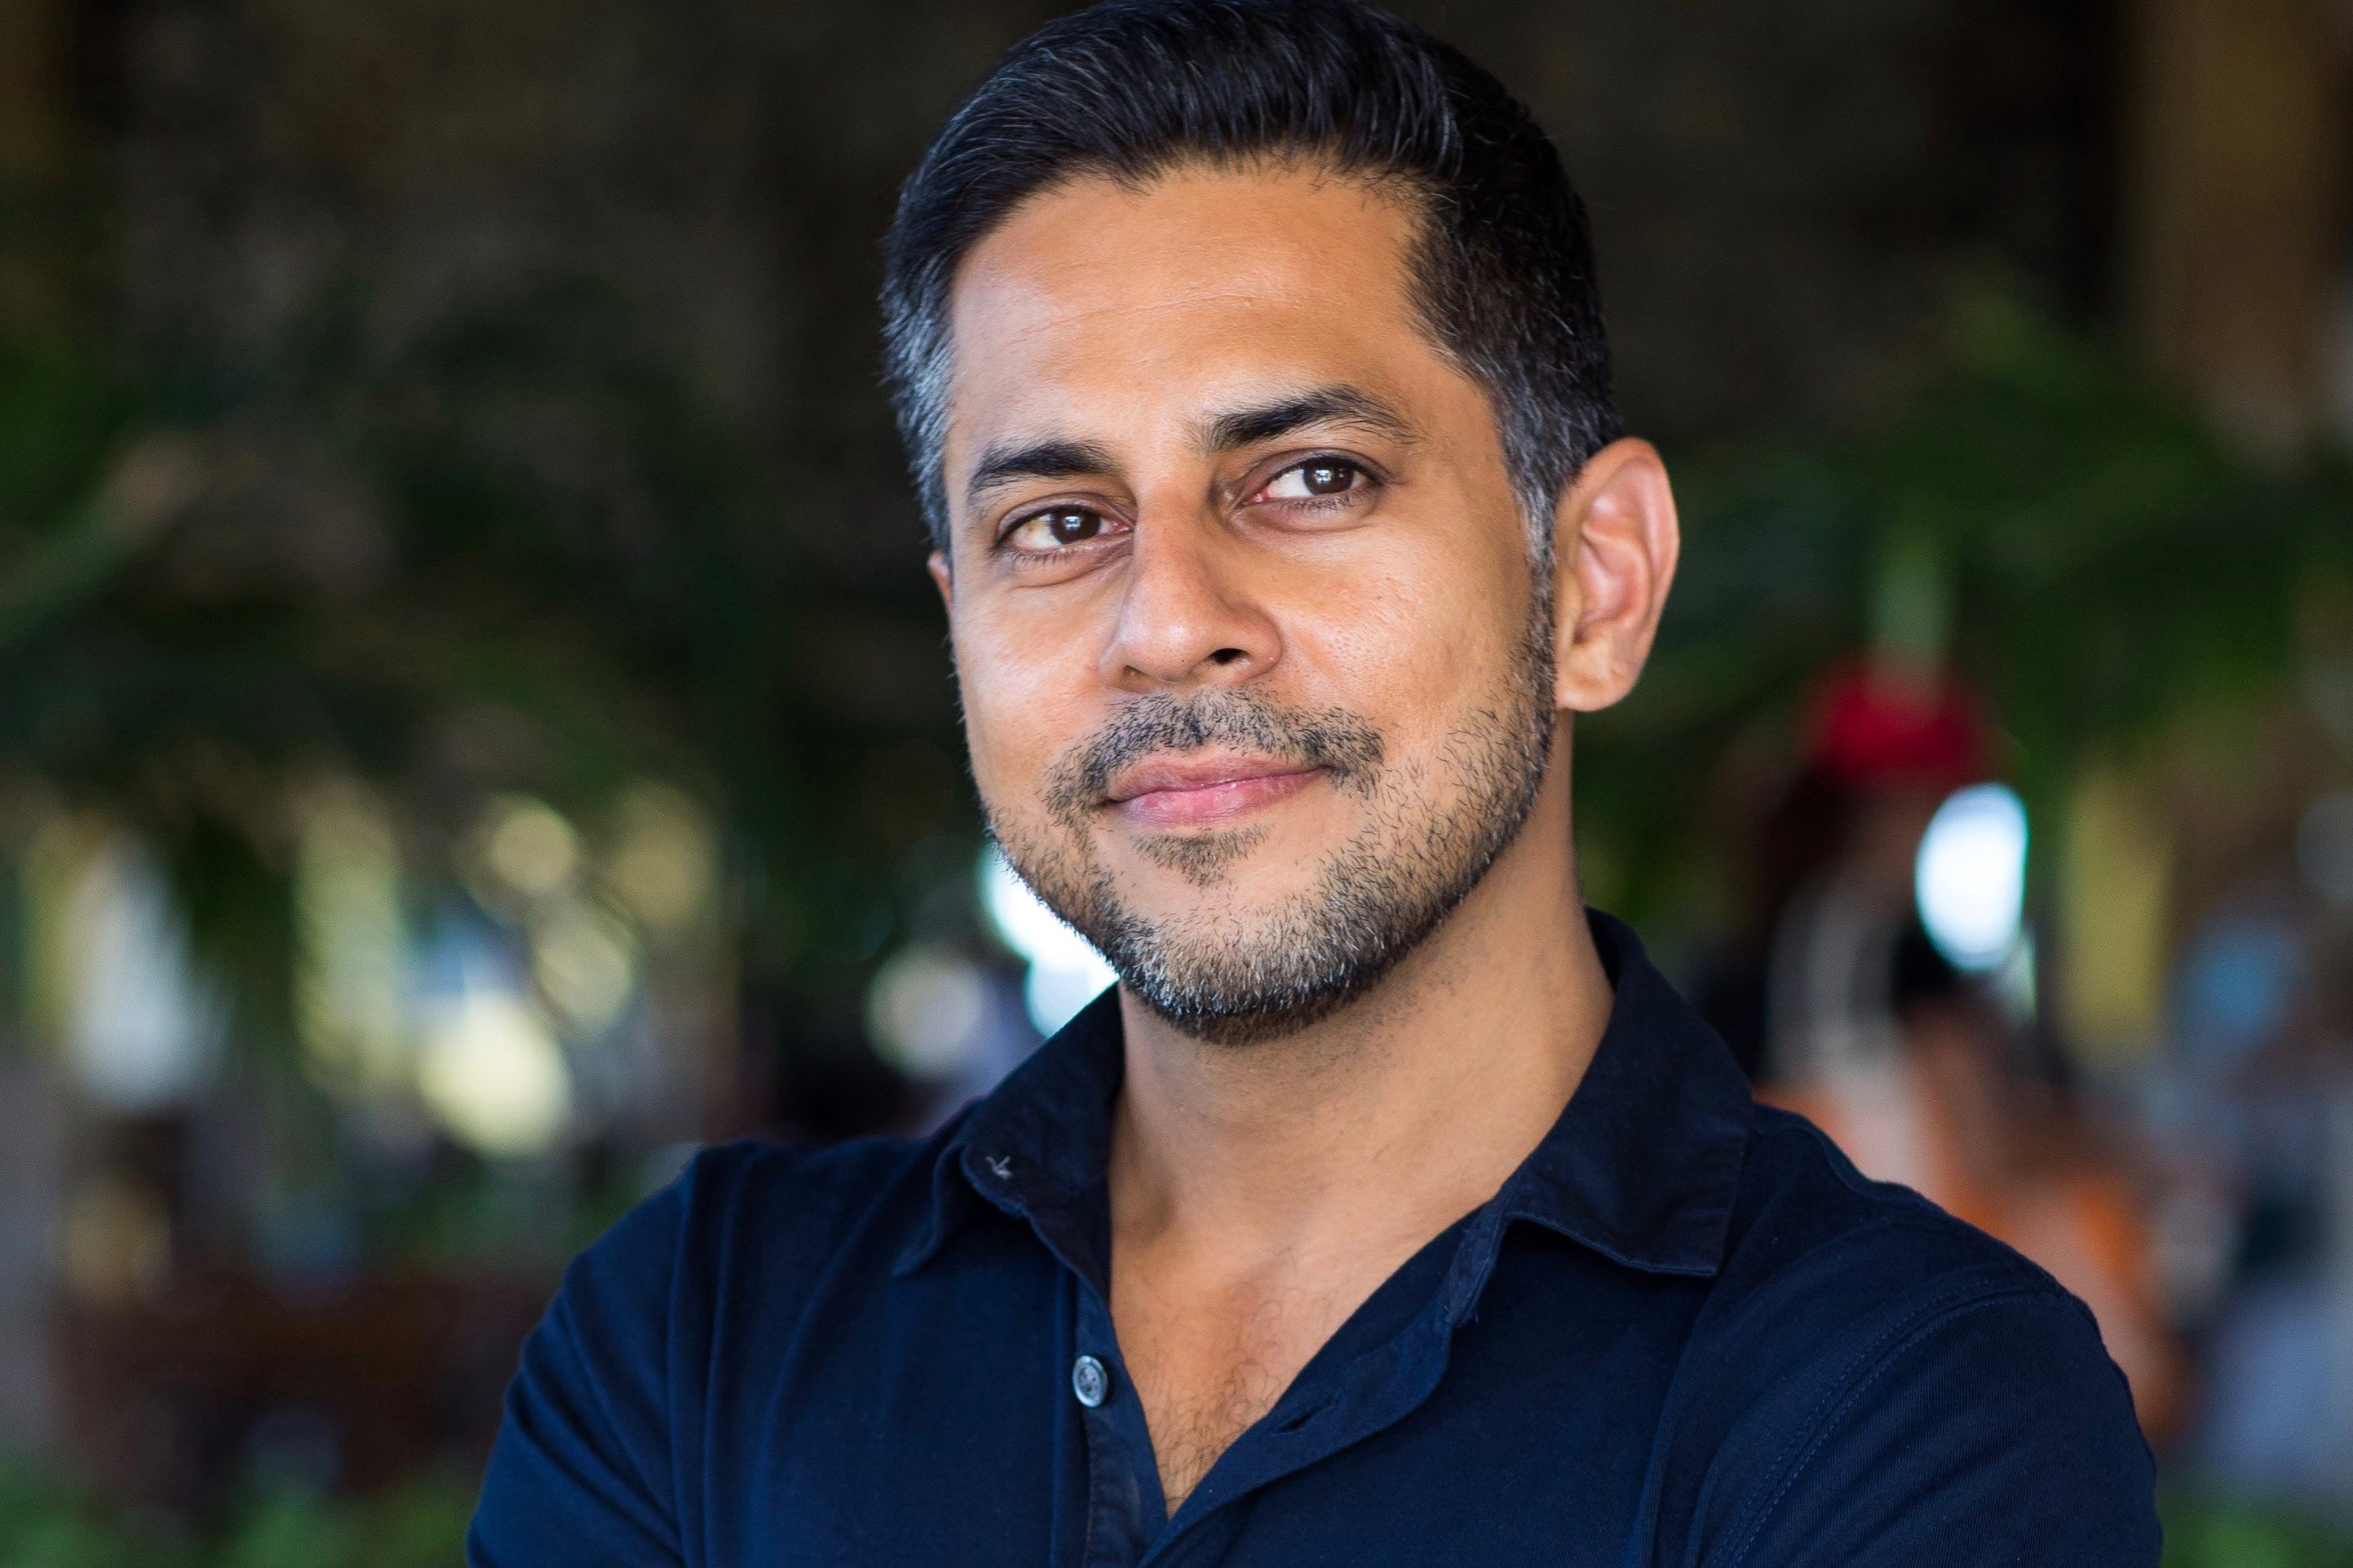 Vishen Lakhiani, the founder of Mindvalley looking very confident and content towards the camera.